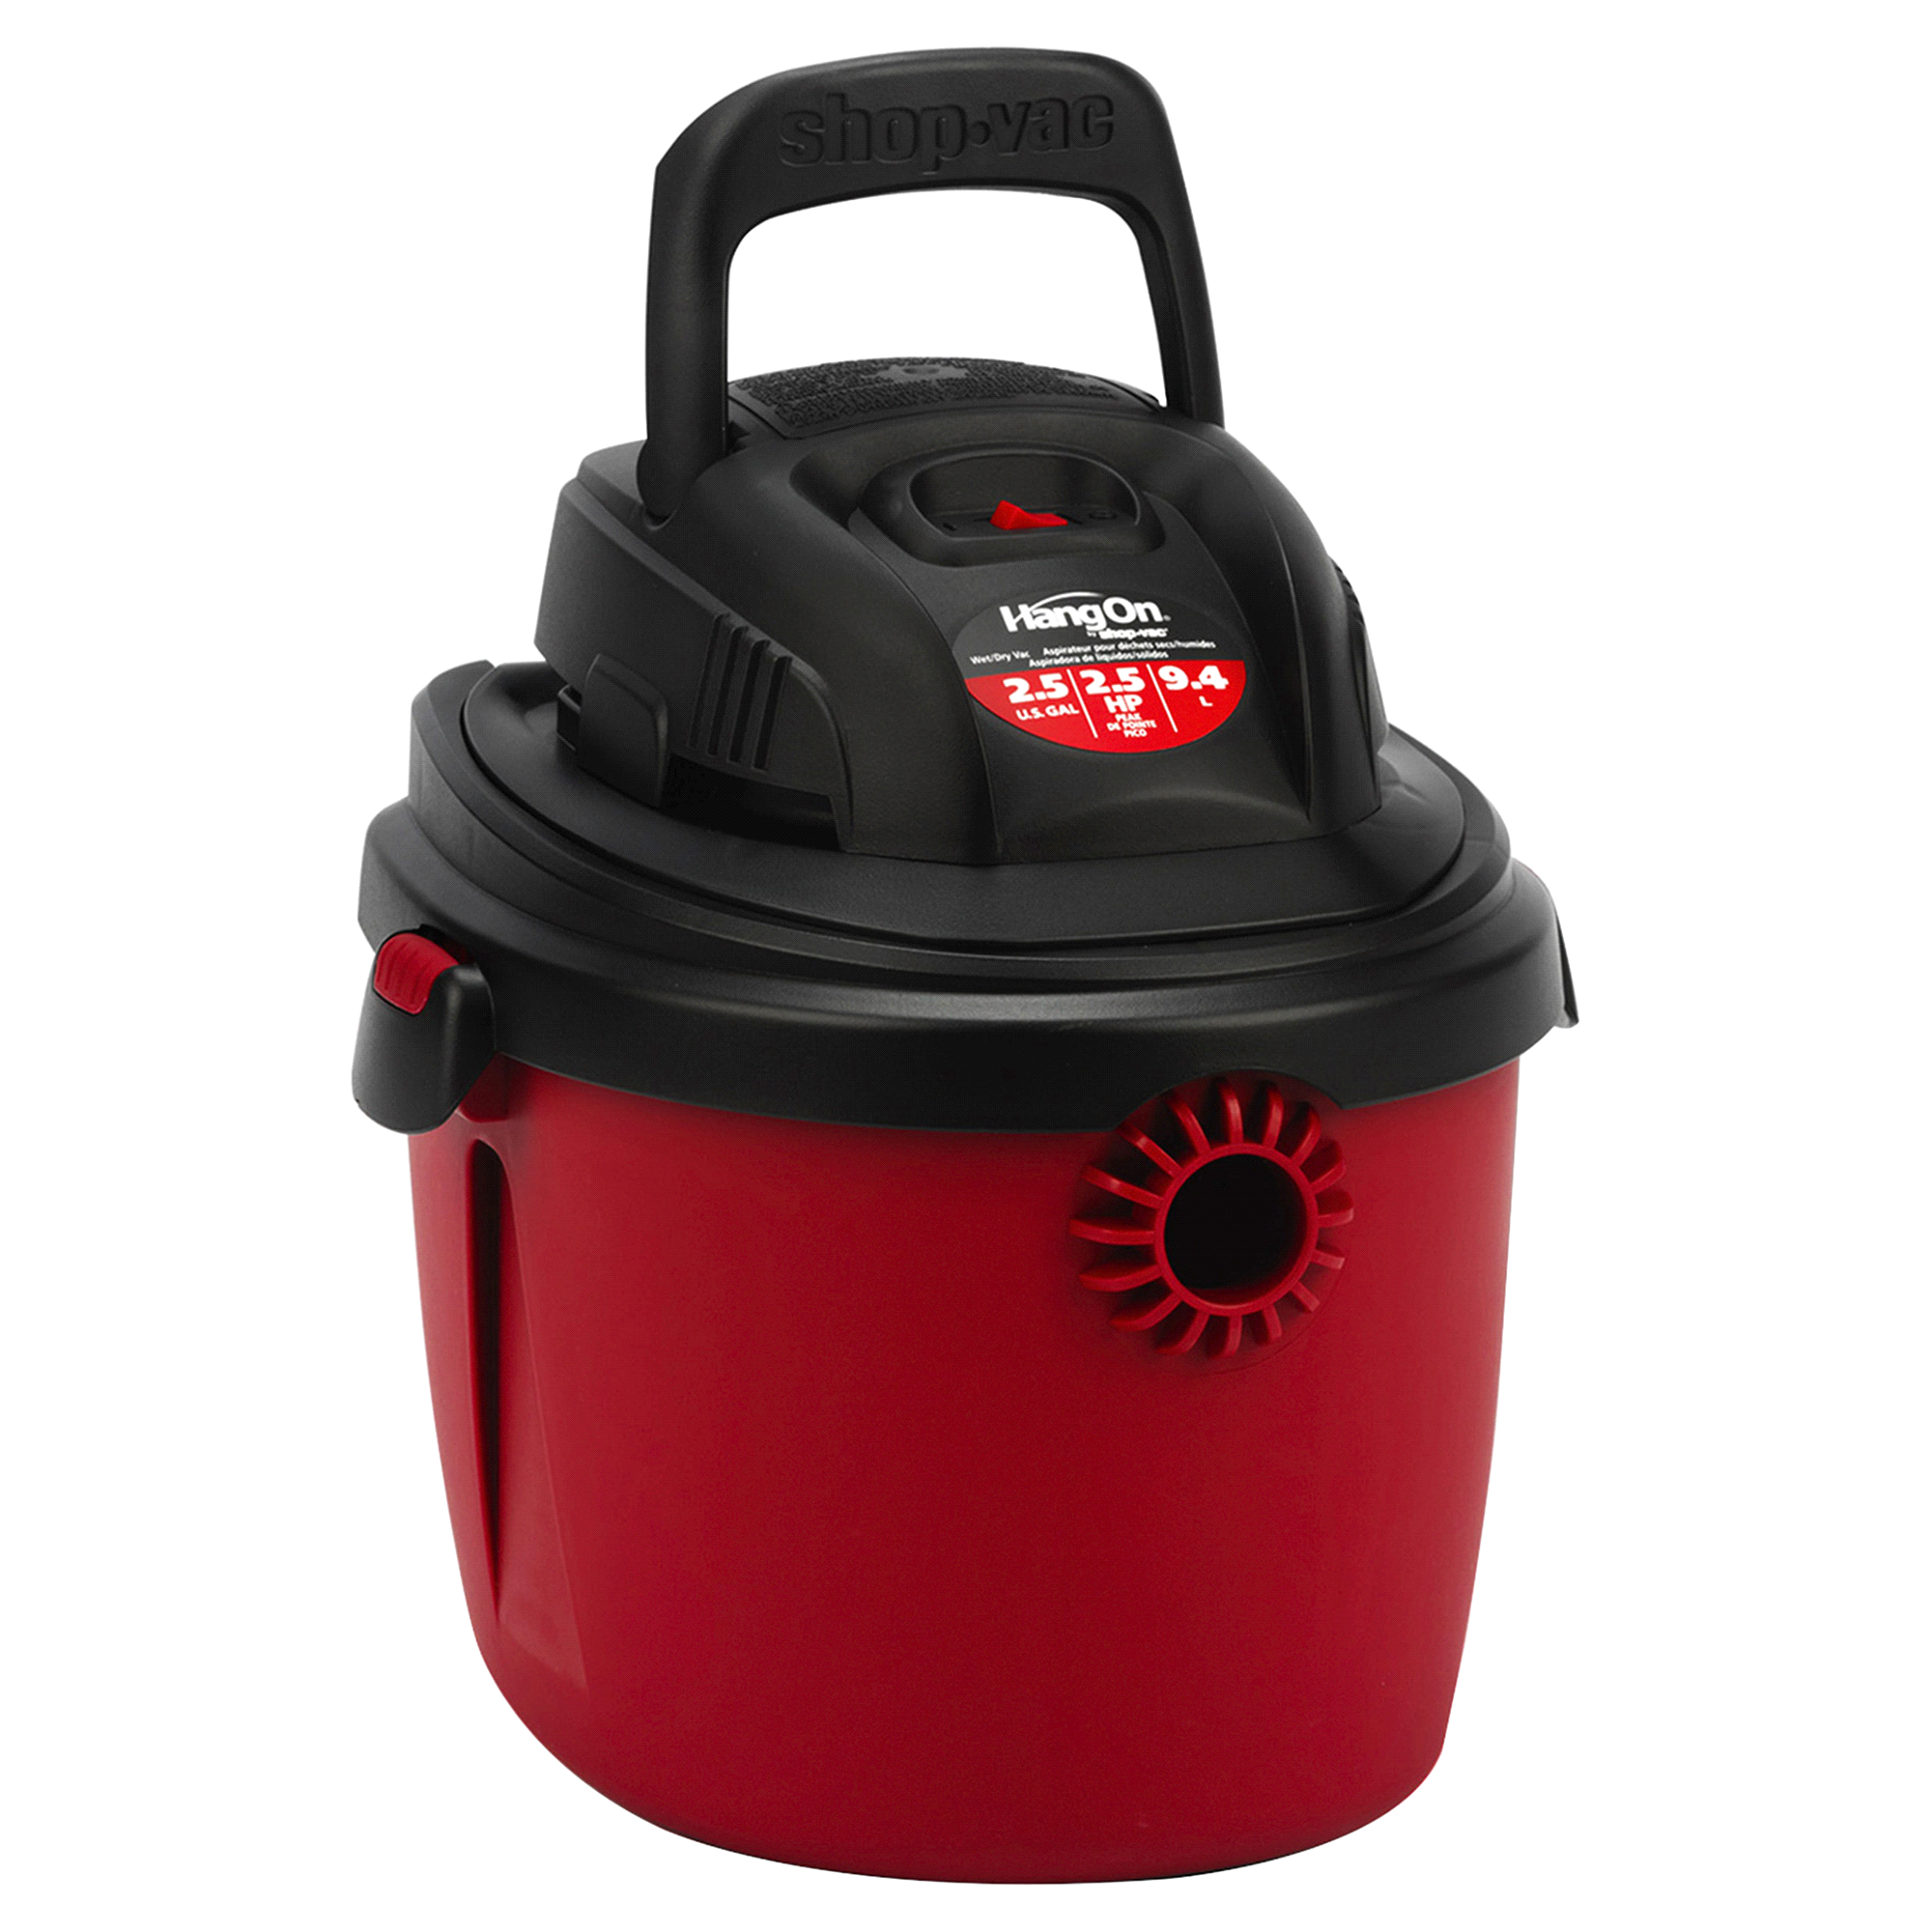 Shop Vac Hang 2 5 gallon 2 5 Peak HP Wet Dry Vacuum